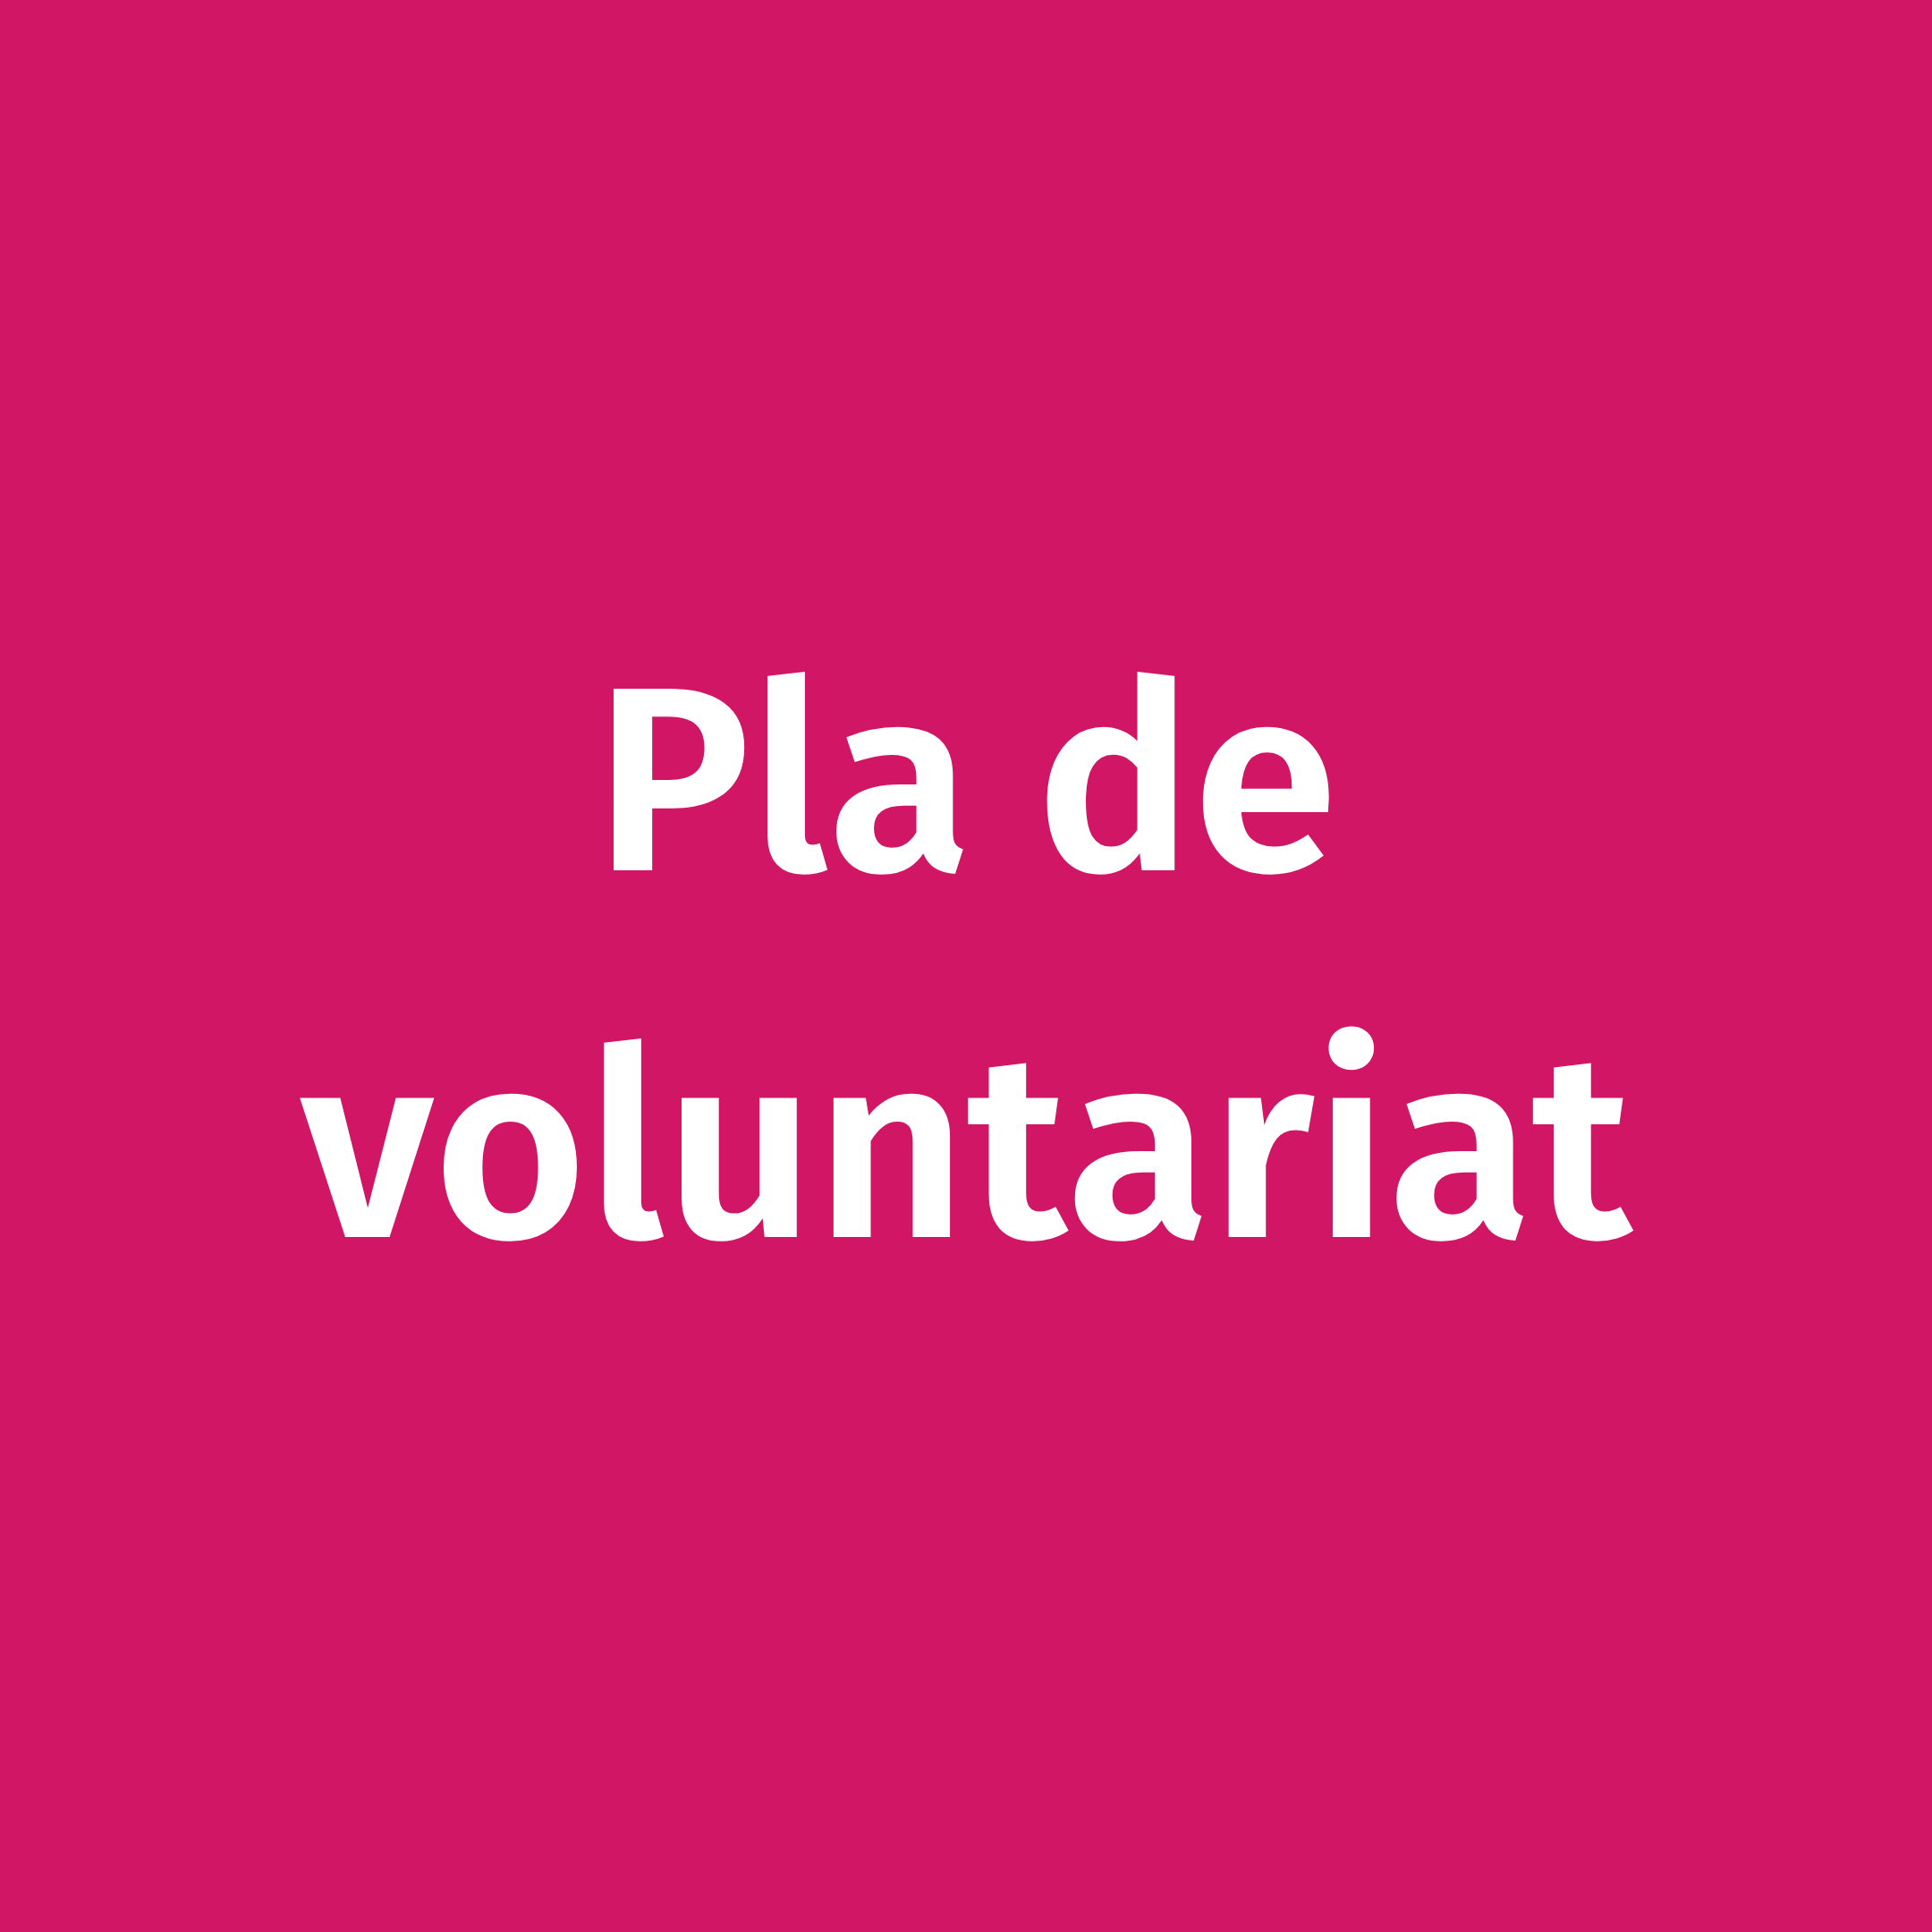 Pla de voluntariat